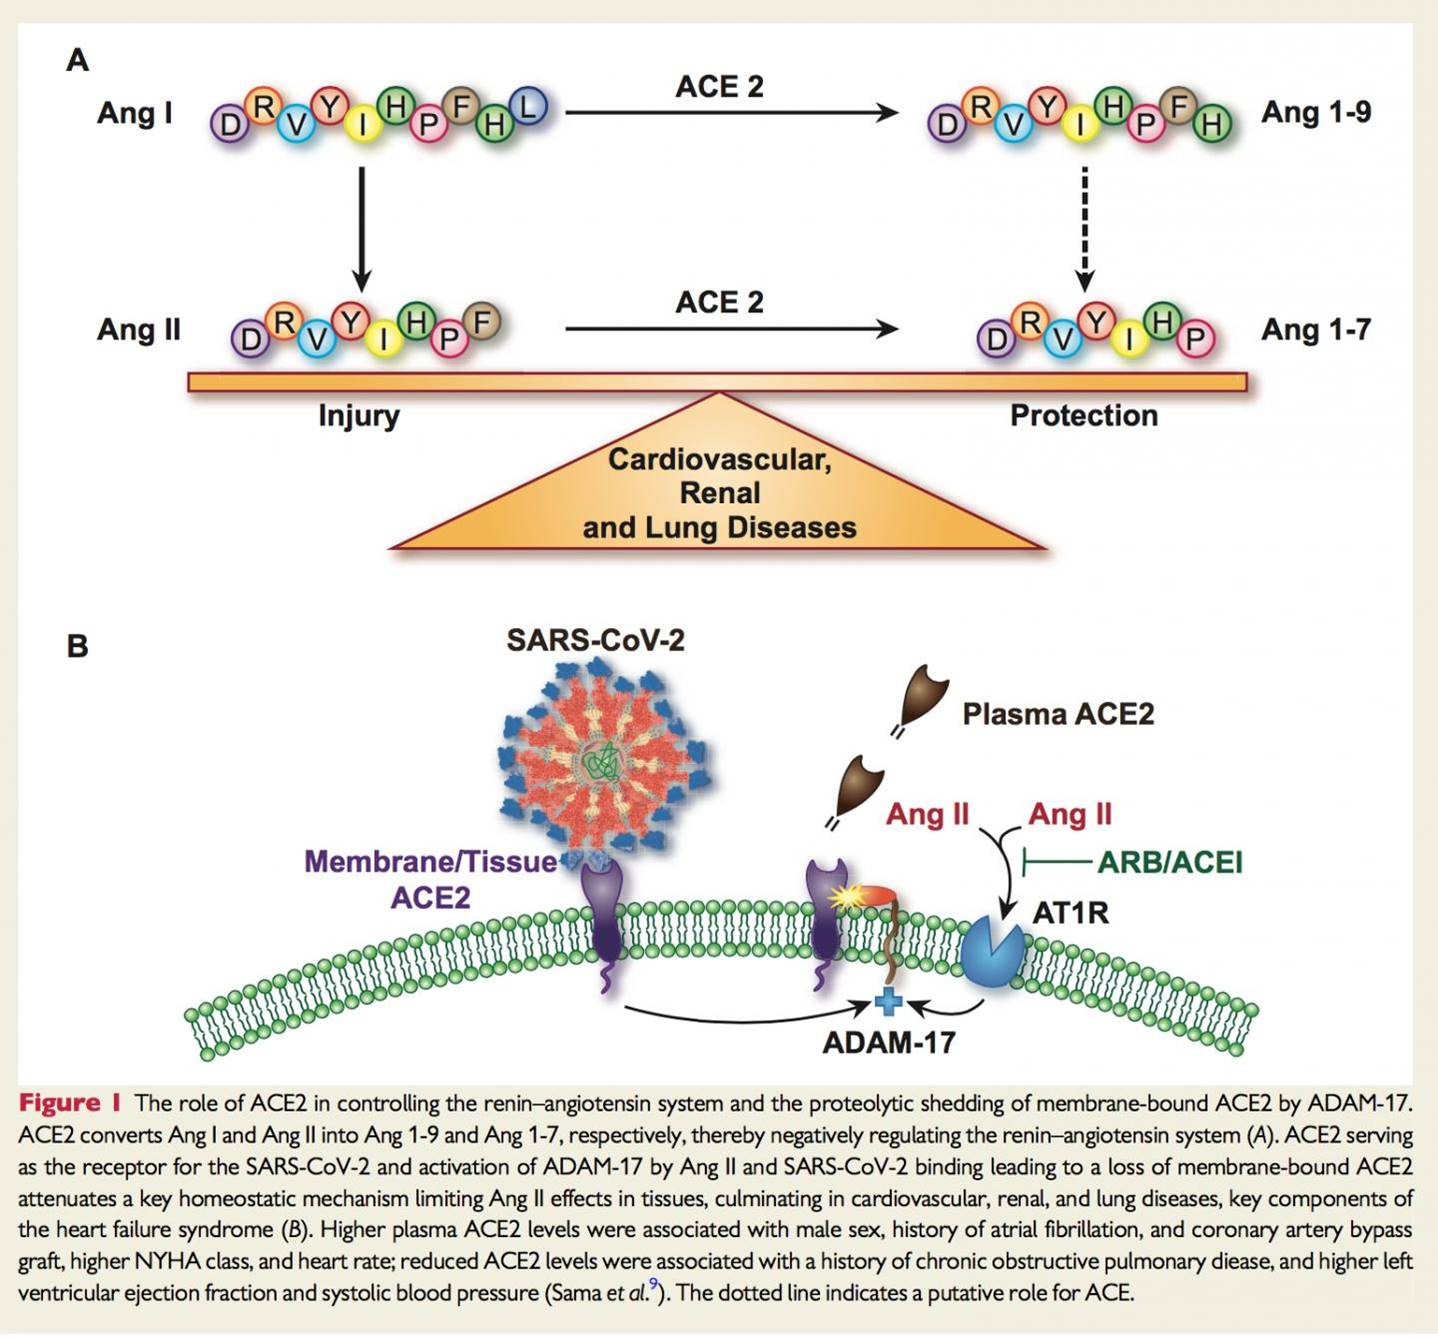 ACE2 is higher in mens blood and may help COVID-19 infect cells